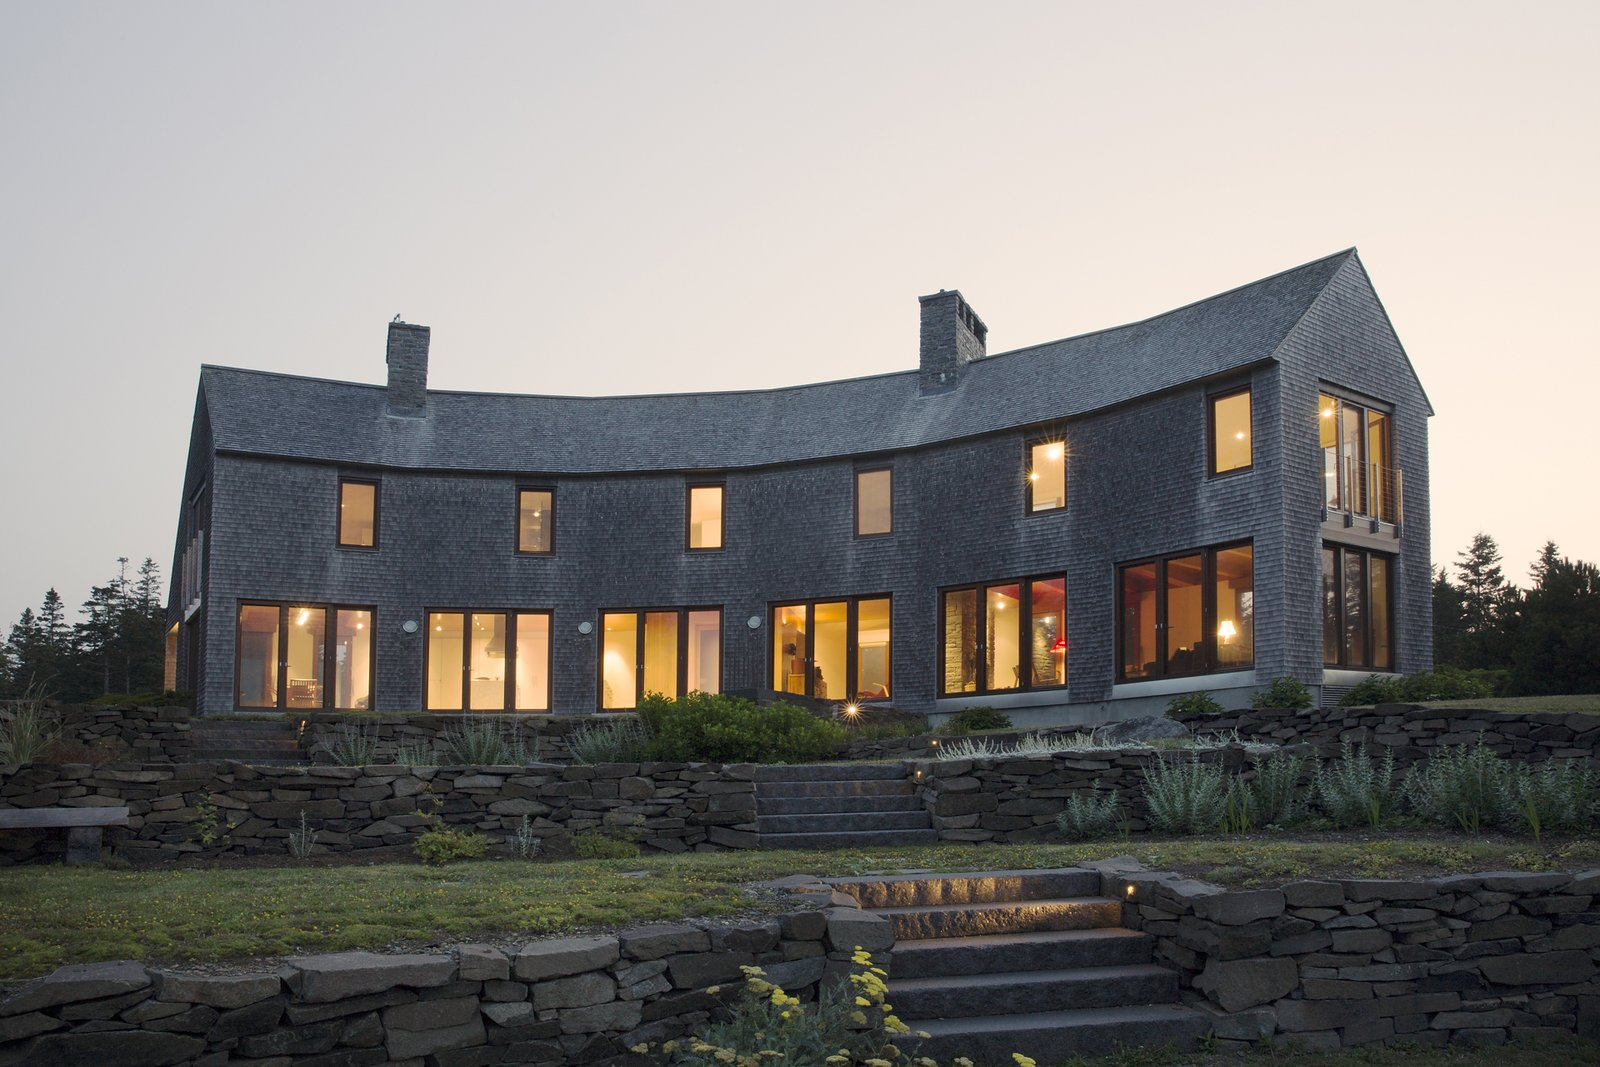 Exterior, Shingles Roof Material, House Building Type, Wood Siding Material, and Gable RoofLine Southwest faceted facade from garden  Deep Cove House by Elliott + Elliott Architecture